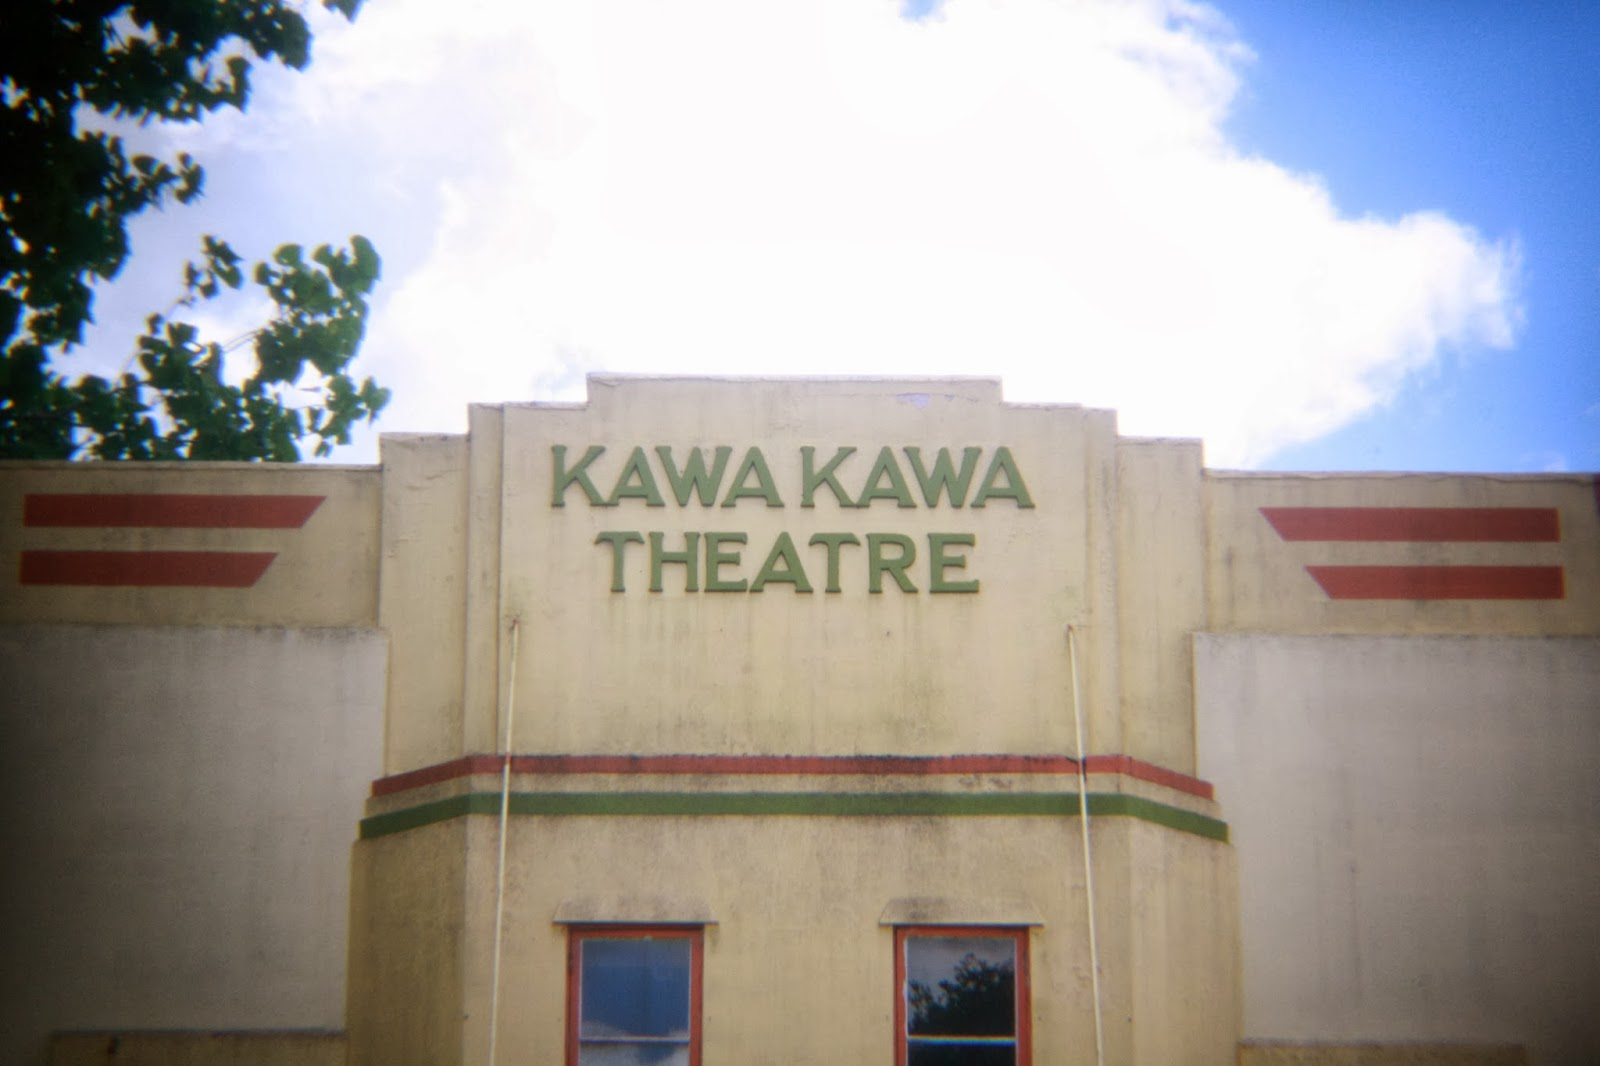 The Kawakawa theatre. It's a beautiful deco building.